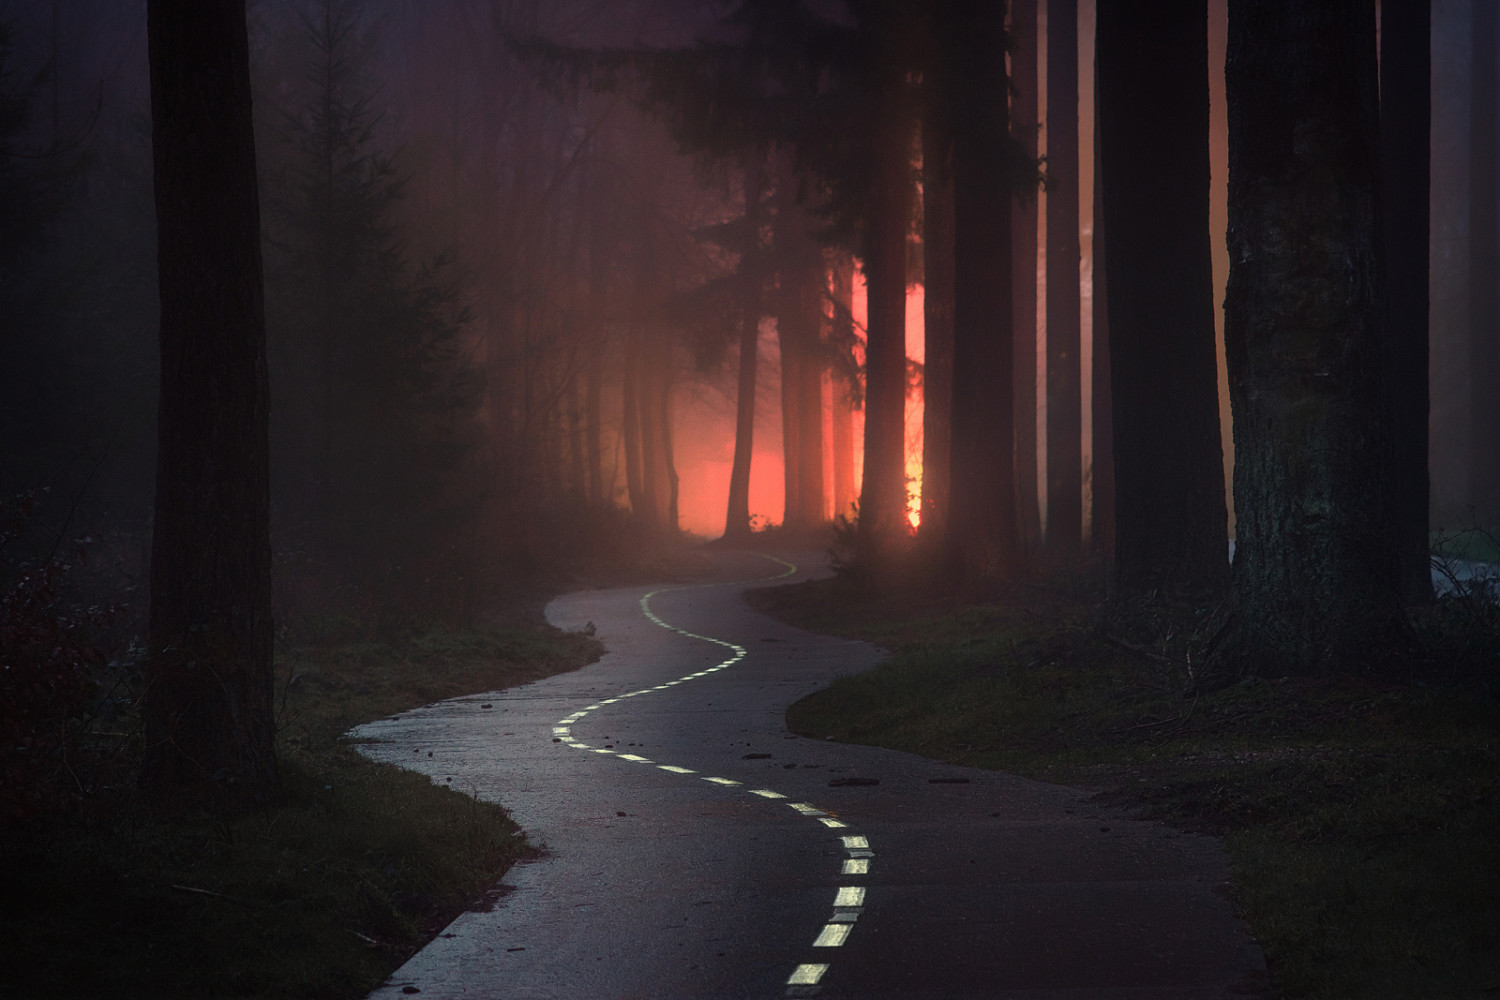 Turn Around: The Making of this Mysterious Misty Photo